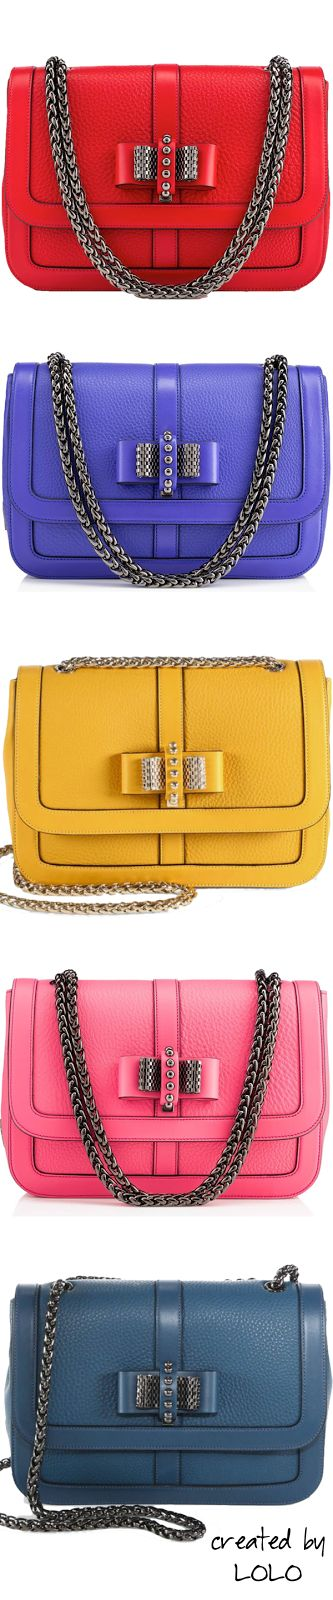 Christian Louboutin Sweet Charity Bow-Detail Leather Flap Bags